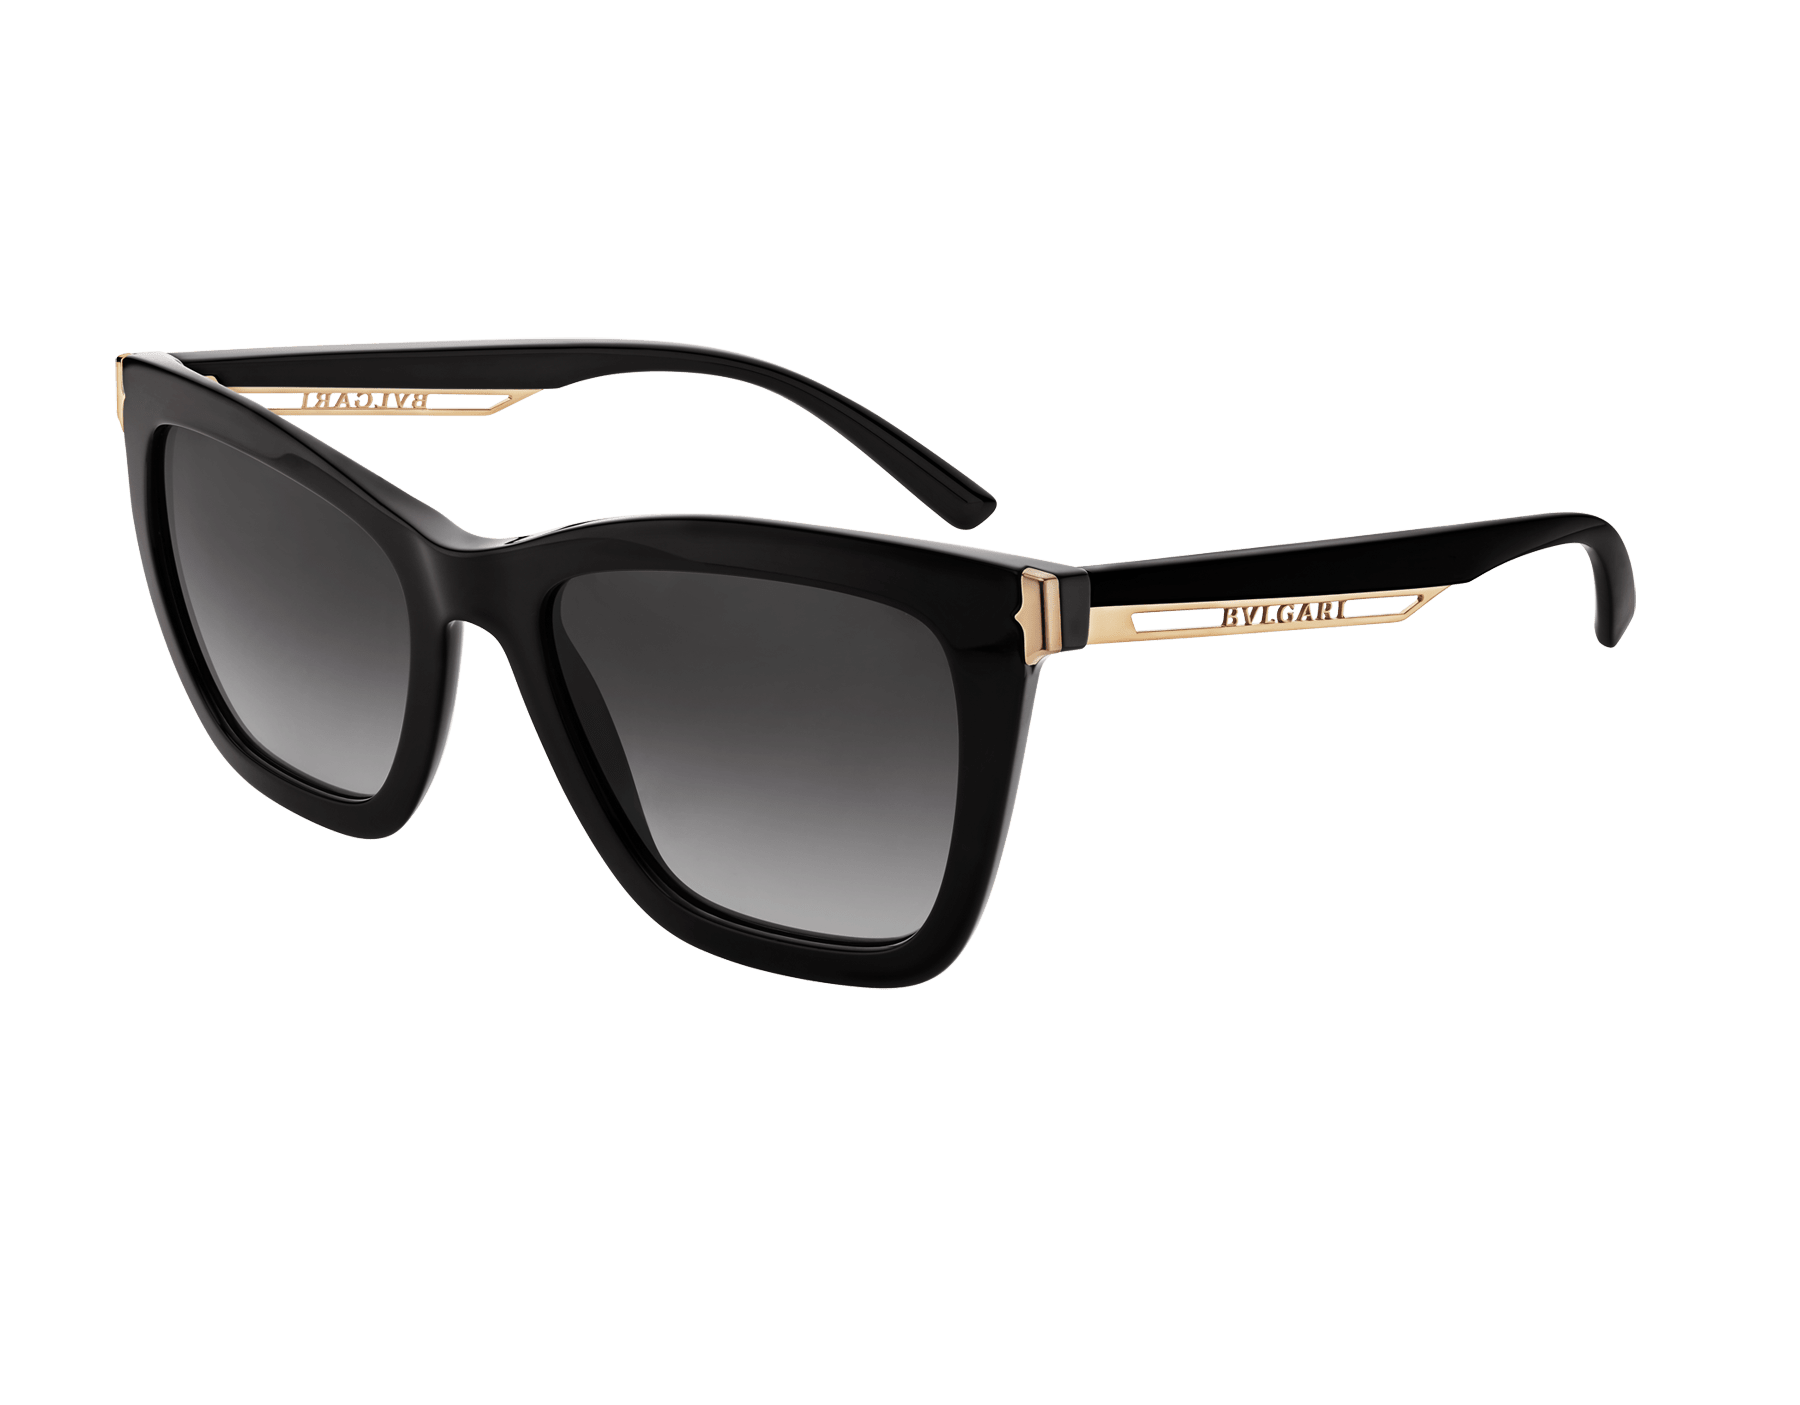 "B.zero1 ""Downtown"" rectangular acetate sunglasses 904075 image 1"